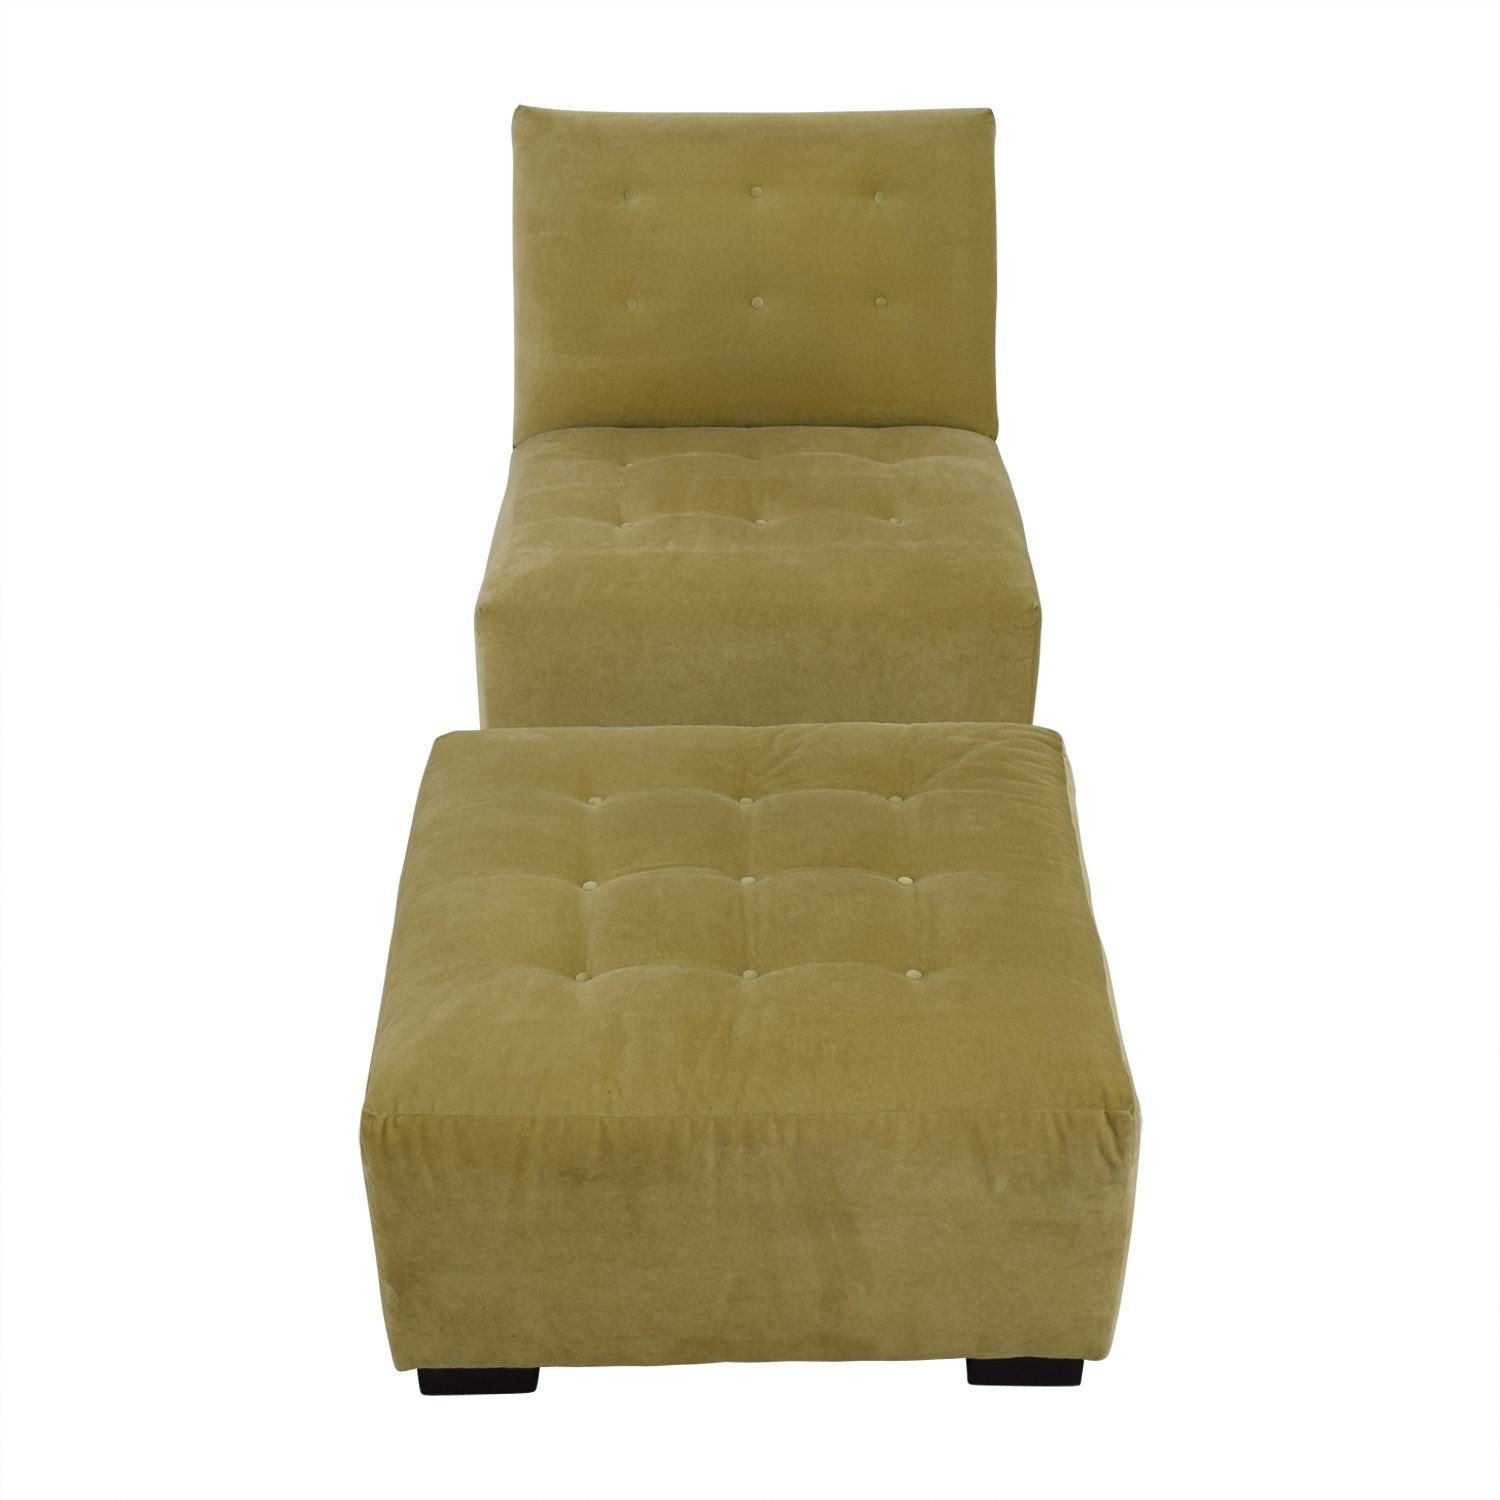 Mitchell Gold + Bob Williams Mitchell Gold + Bob Williams Sage Green Tufted Velvet Lounge Chair & Ottoman price